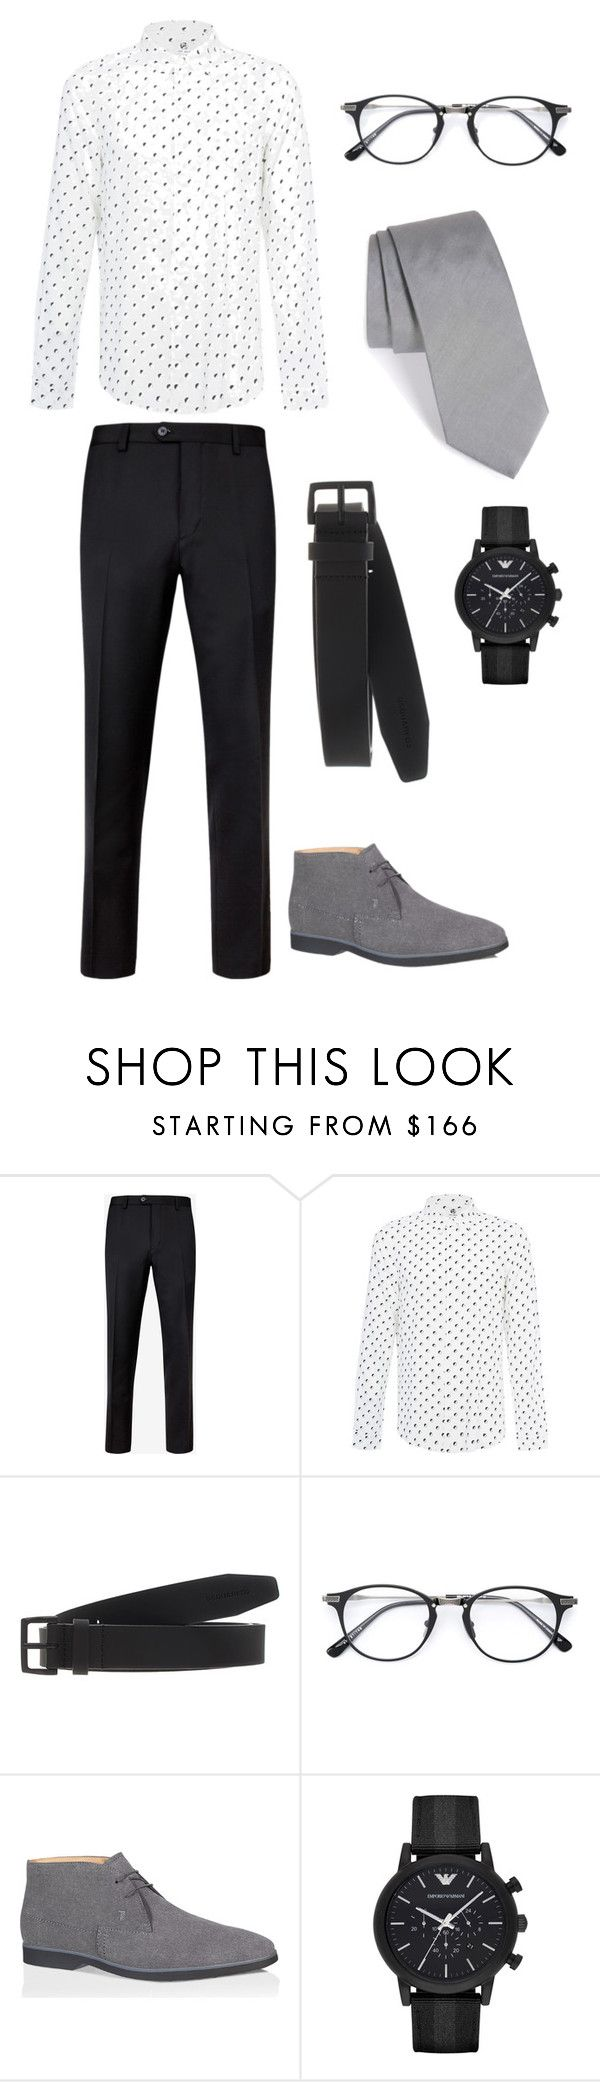 """Look 2 - WILSONS"" by kirravanblanken on Polyvore featuring Ted Baker, PS Paul Smith, Dsquared2, Tod's, Emporio Armani, Lanvin, men's fashion and menswear"